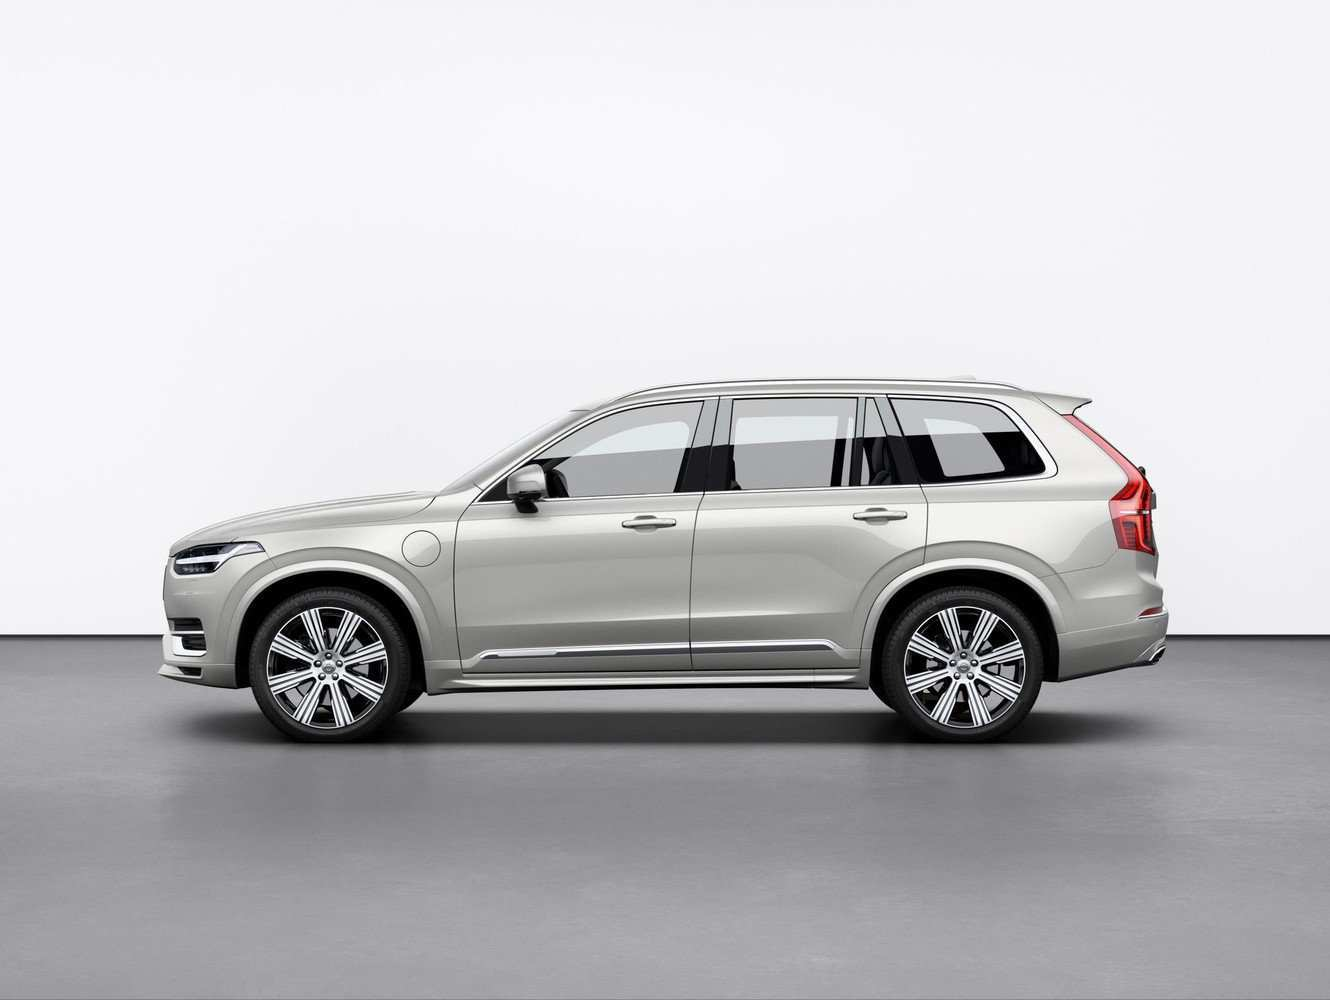 19 New Volvo Xc90 Facelift 2019 Pictures